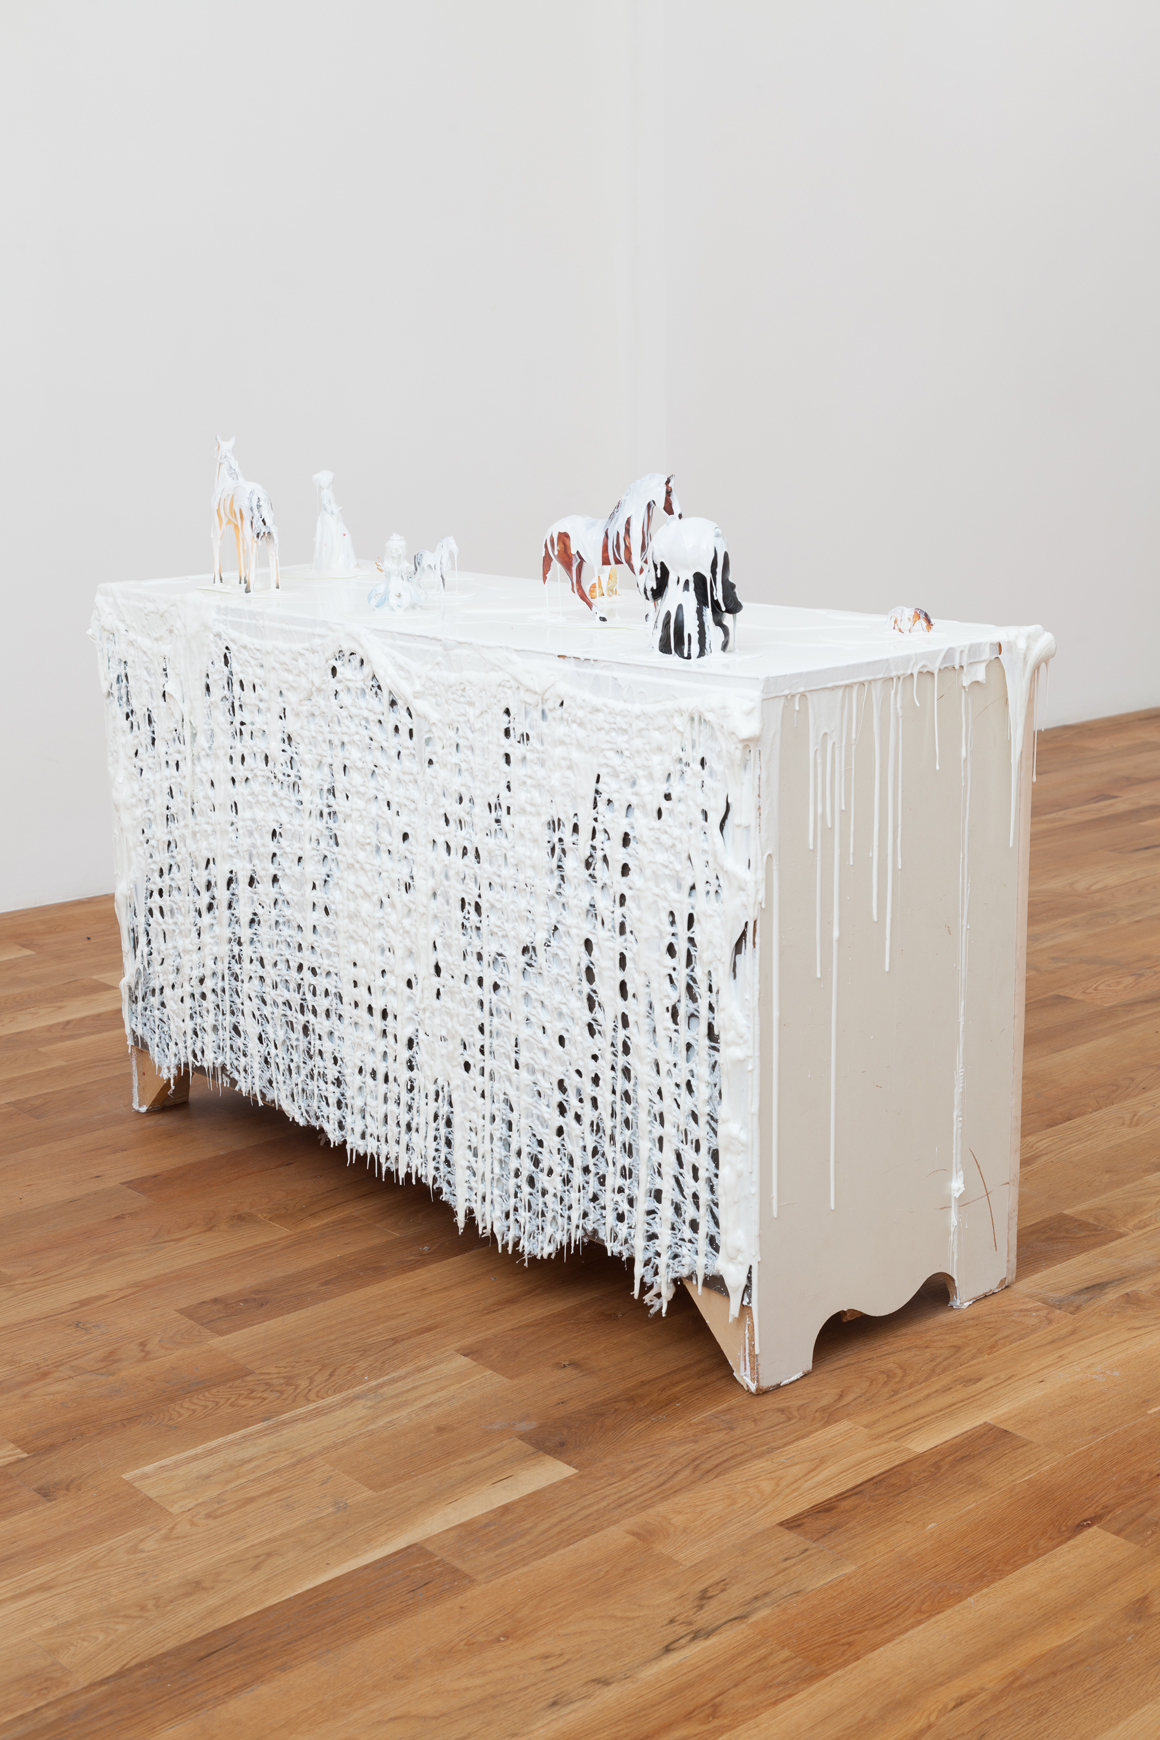 """<p><span class=""""name"""">Amber Cobb</span><br><em>A Few Steps Back</em>(view 3)<br><a class='inquire' href='mailto:info@gildargallery.com?subject=Artwork Inquiry ACOB0048&body=I am interested in finding out more about A Few Steps Back by Amber Cobb'>Inquire</a></p>"""